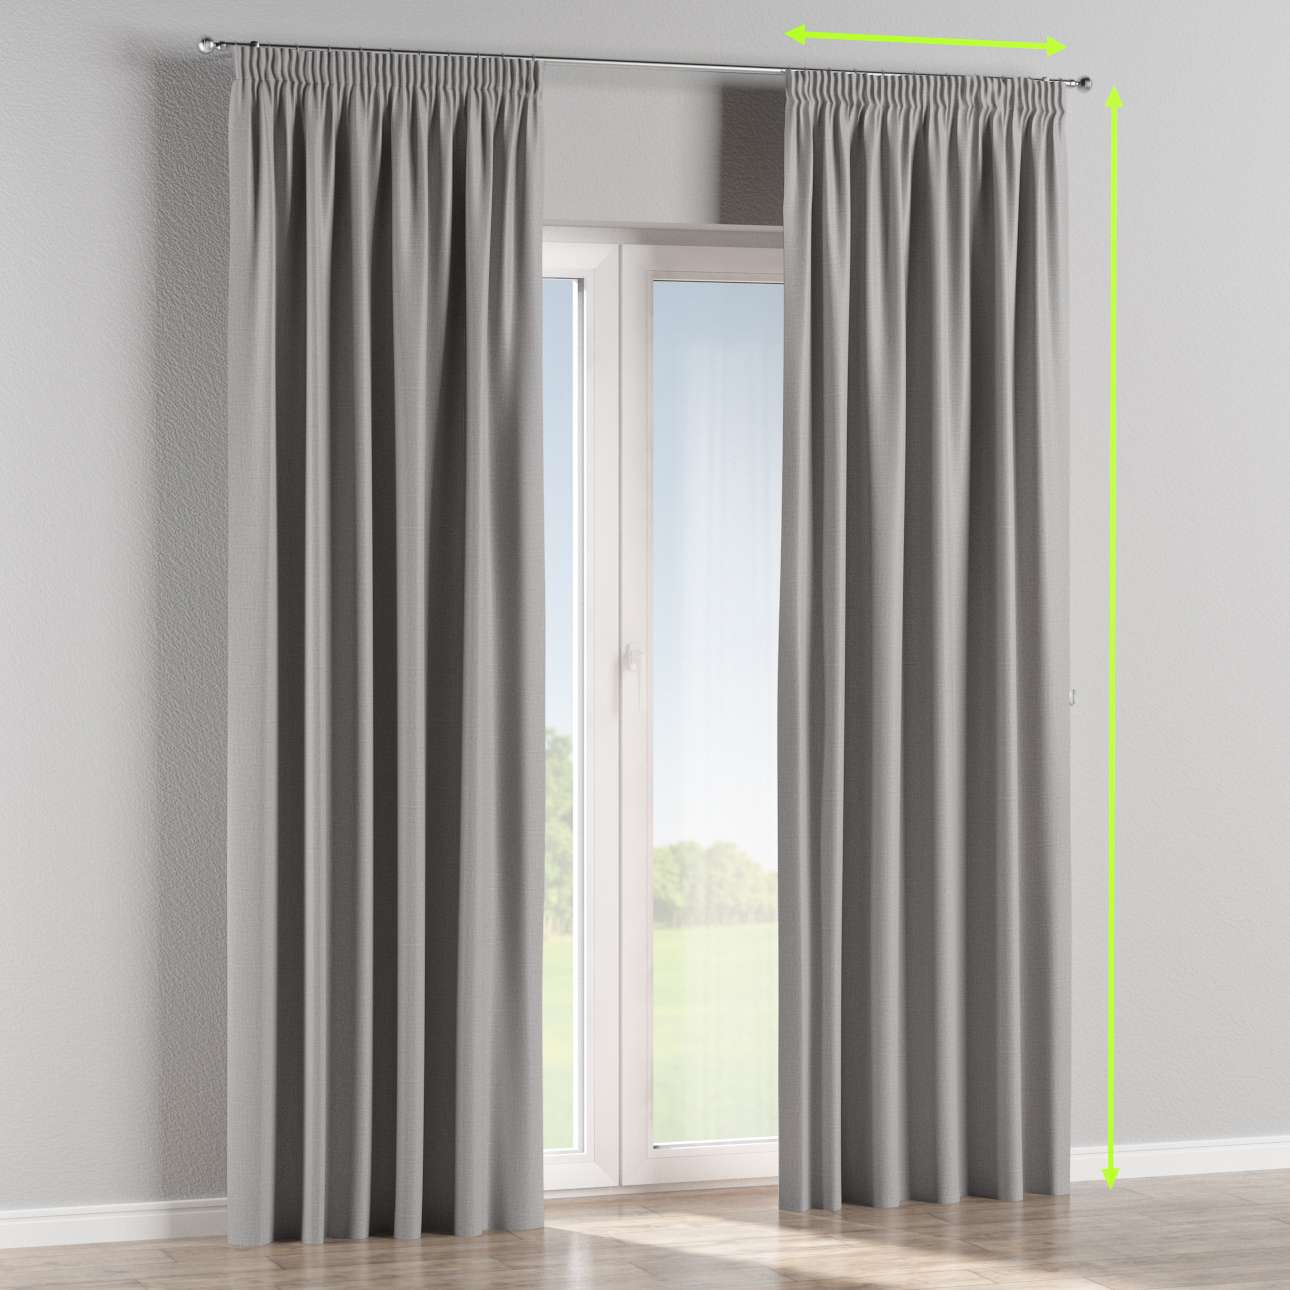 Pencil pleat curtains in collection Blackout, fabric: 269-64